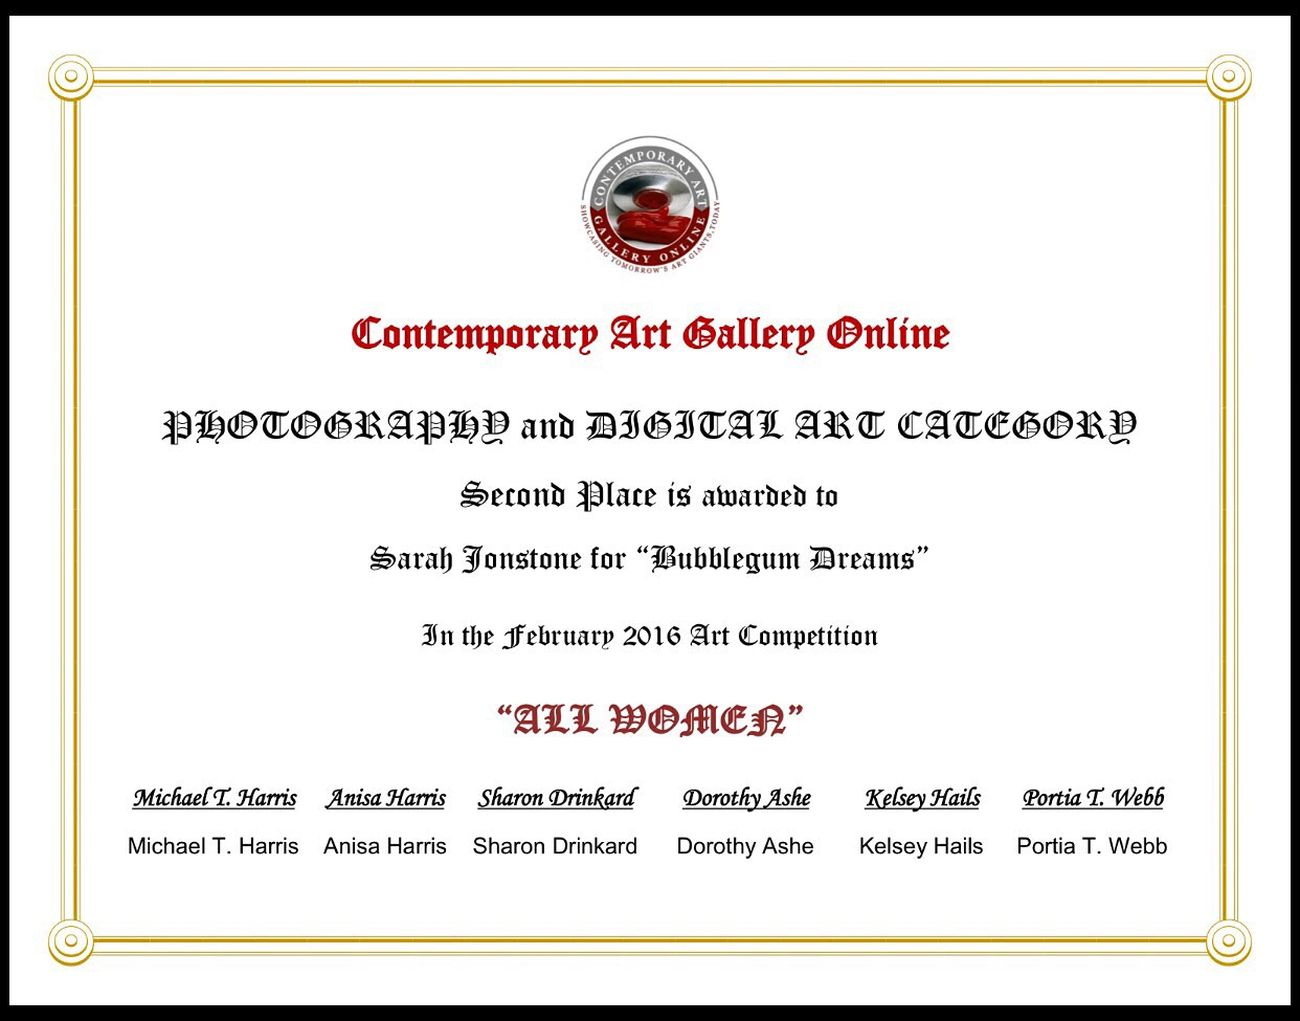 Very Proud WINNERS CIRCLE Digital Art Creative Photography Certificate Second Place Thrilled Can't Believe It Rebelpunk Contemporary Art Gallery Yippee